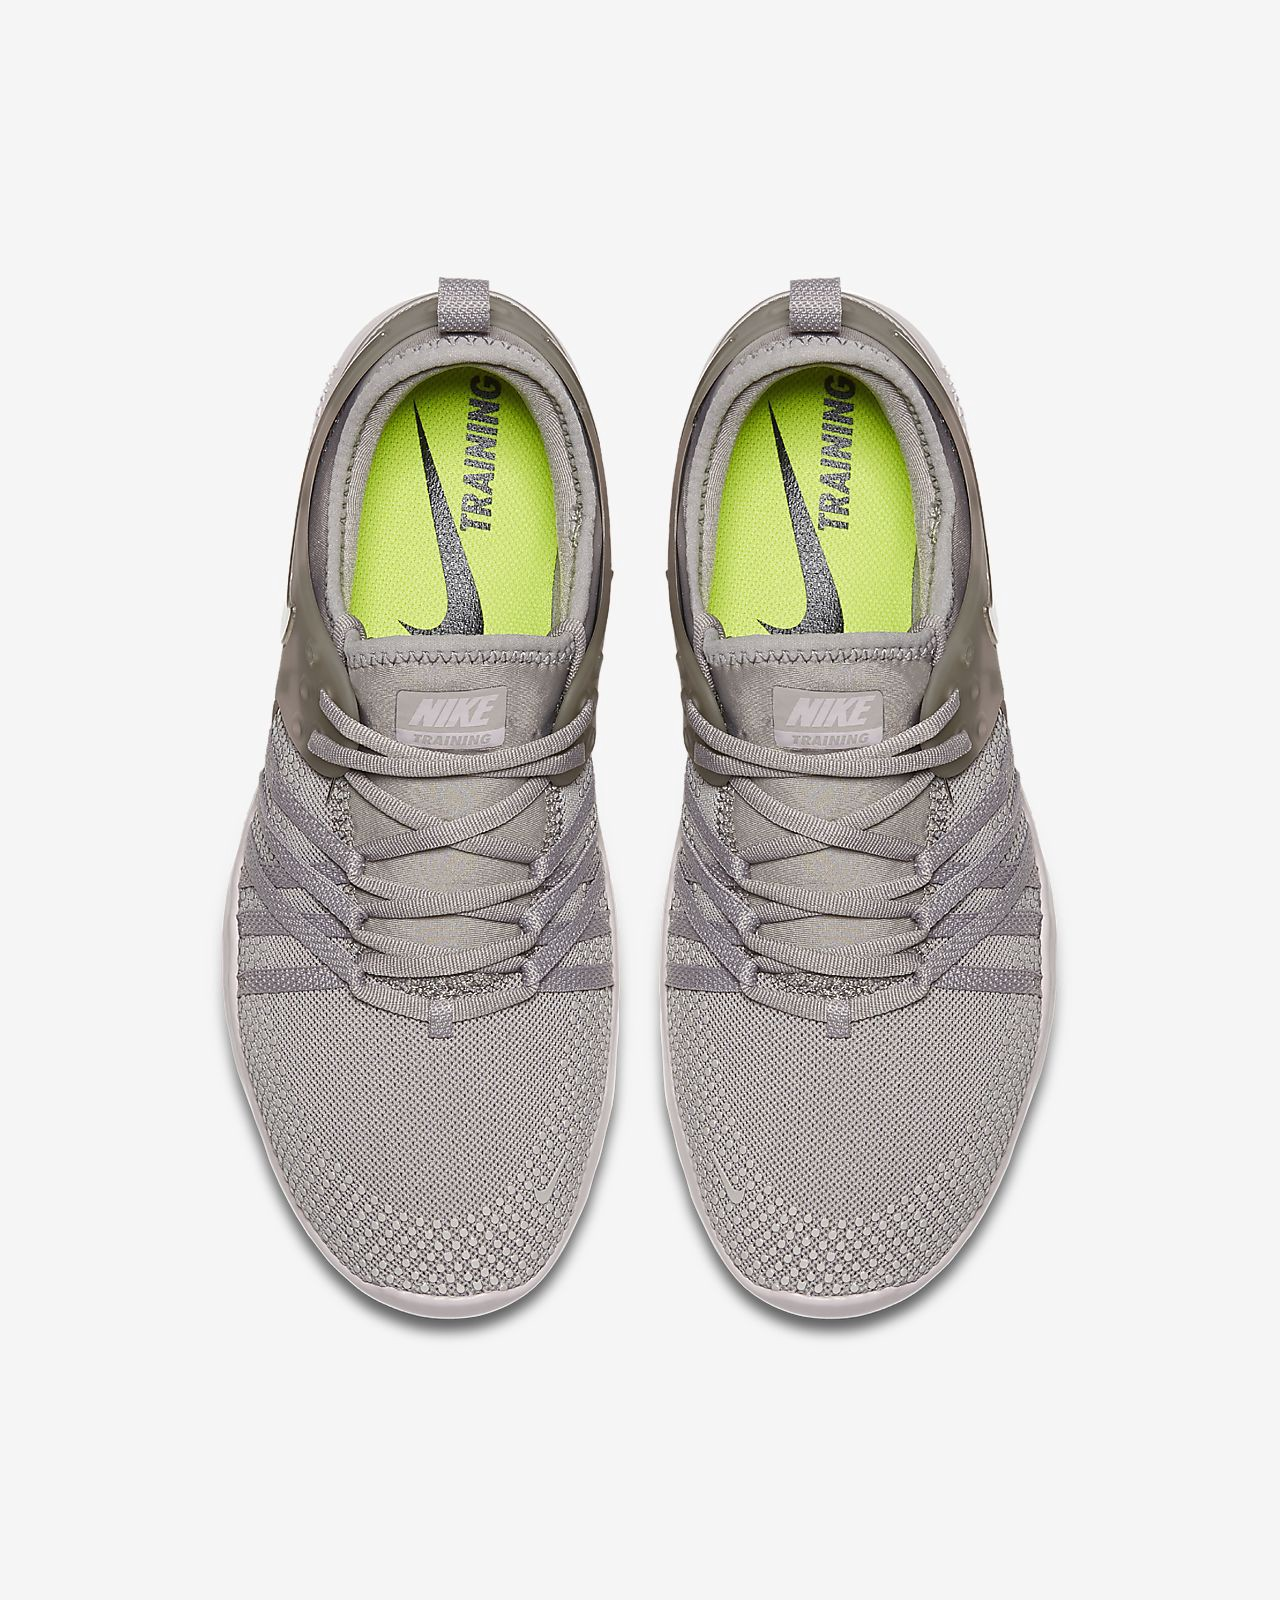 56eded2c5b532 Nike Free Trainer 7 Premium Women s Bodyweight Training